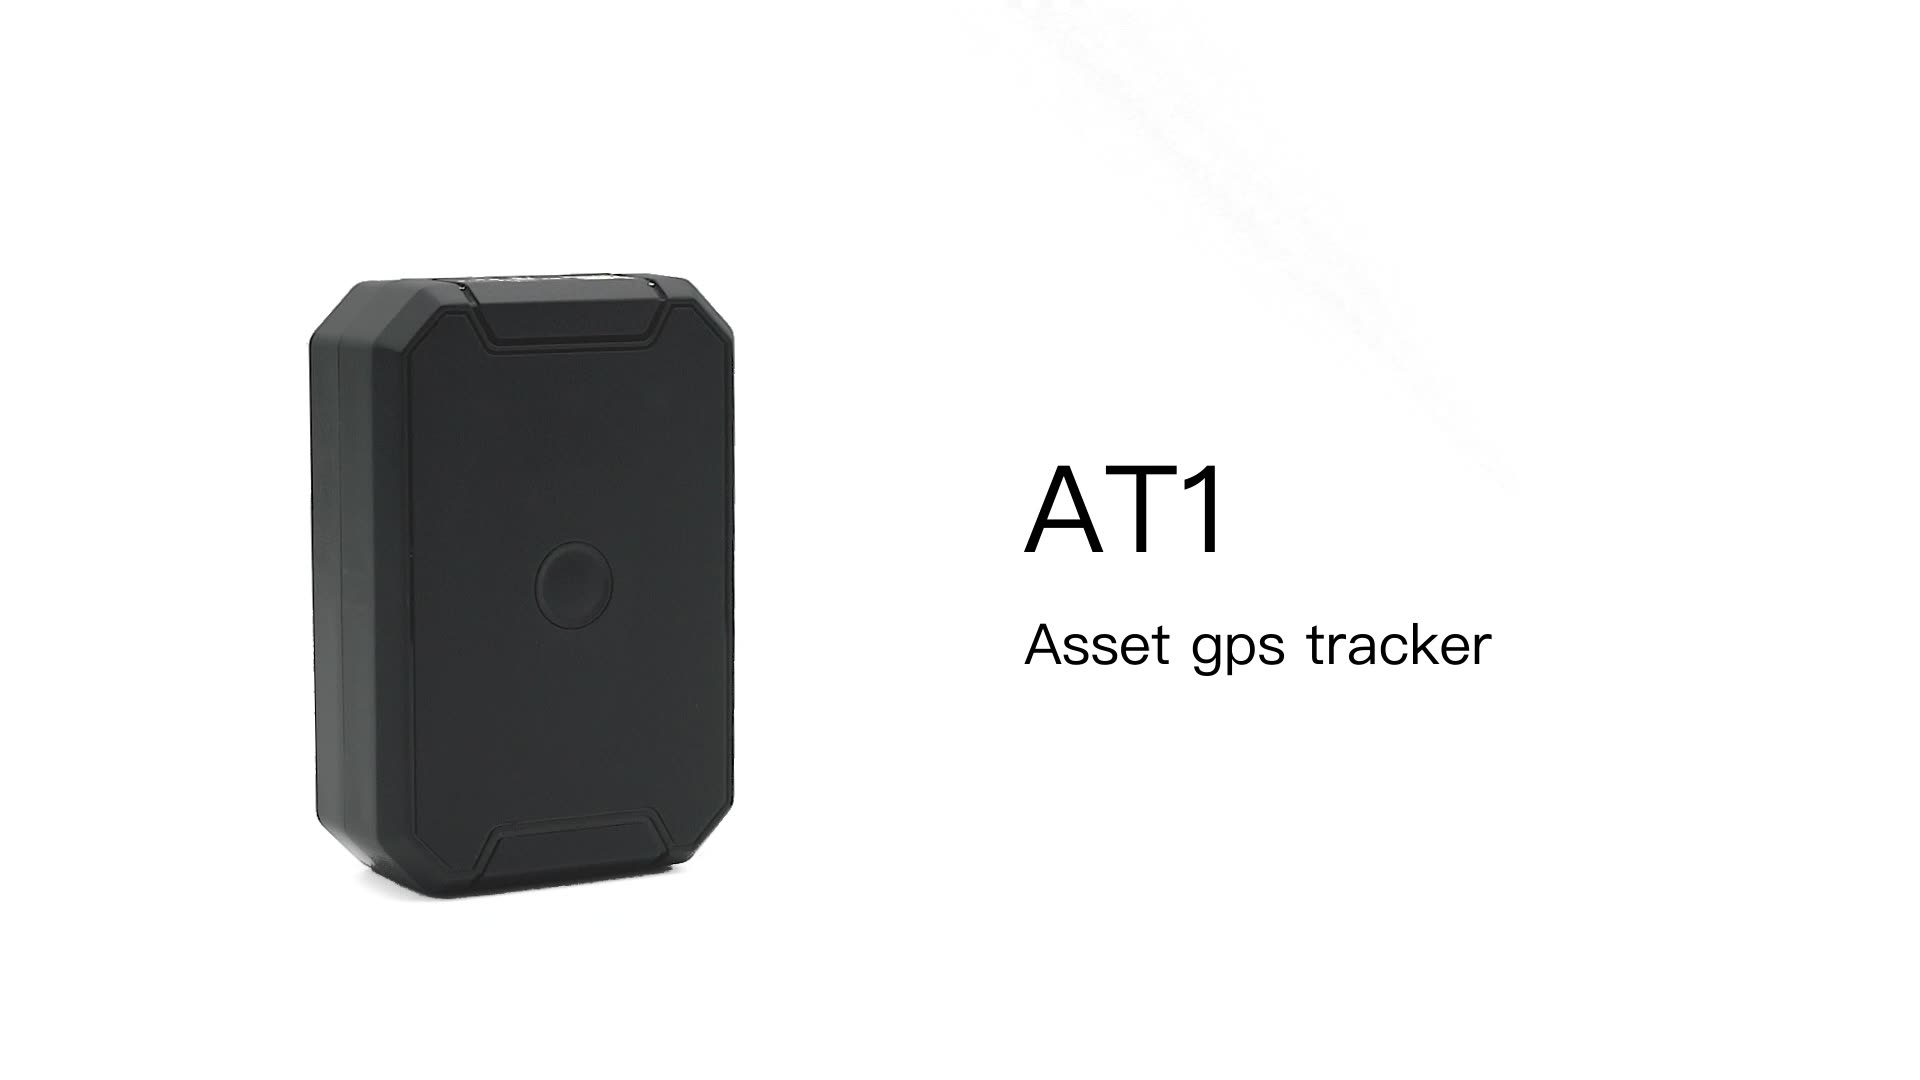 JIMI AT1 Asset GPS tracker with IP67 dust and water proof